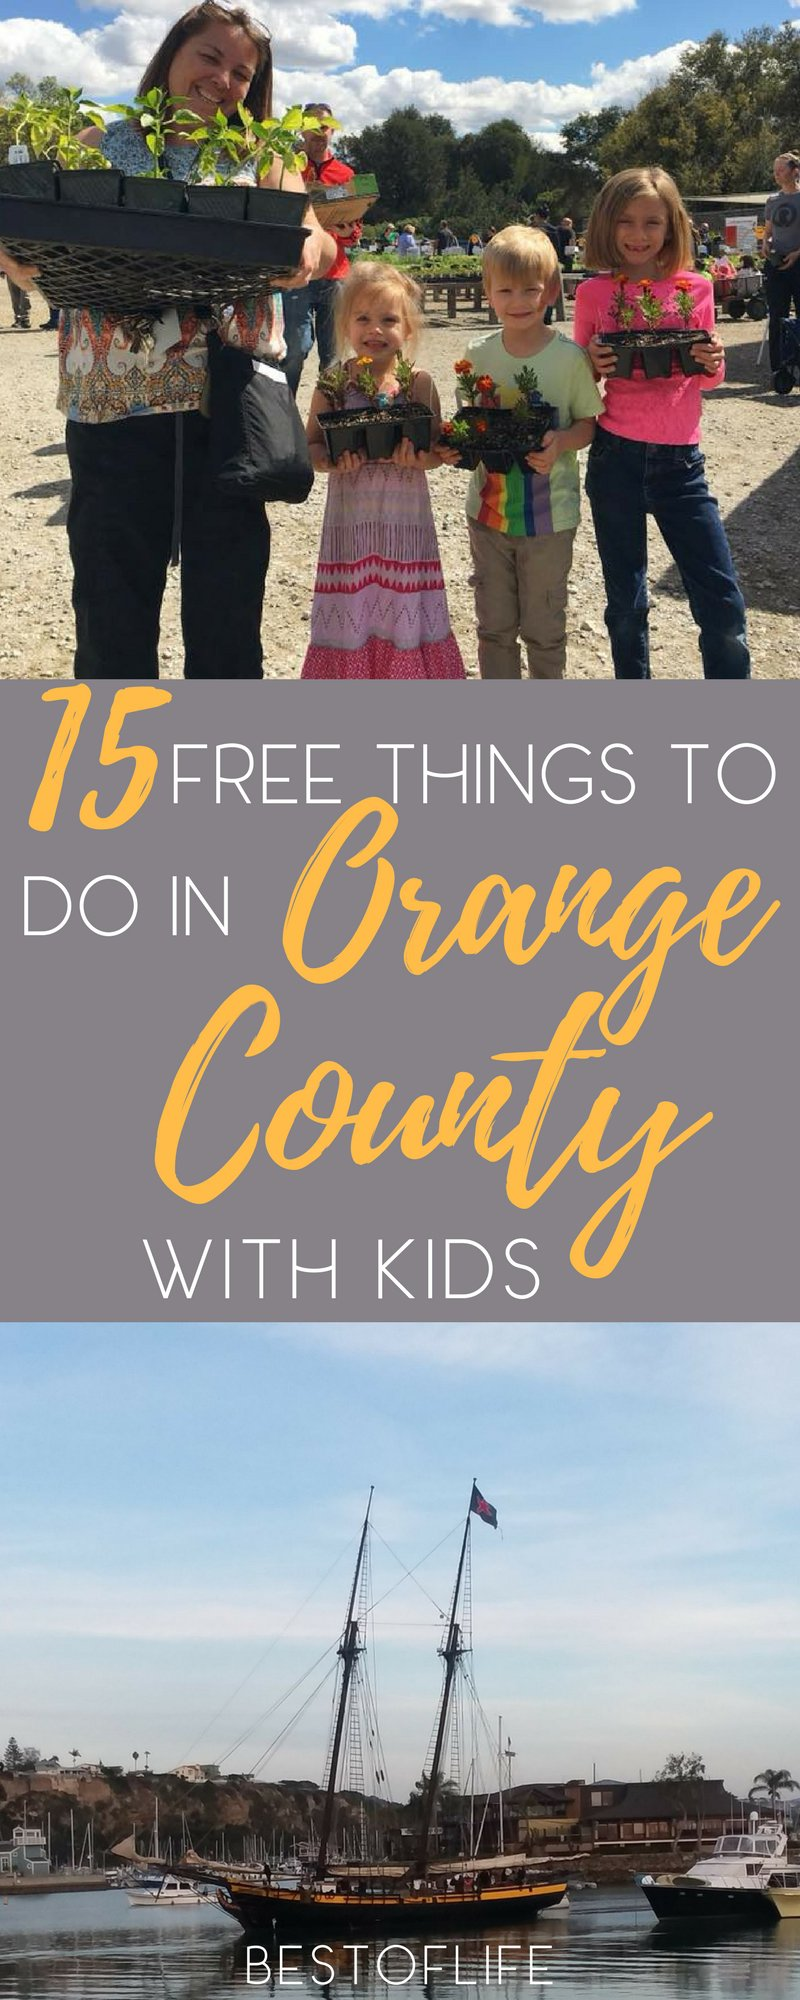 Fill all of your weekends with new adventures and fun activities by enjoying the best free things to do in Orange County with kids. Free Things to do in Orange County | Family Friendly Things to do inOrange County | Things to do in Orange County | Things for Kids to do in Orange County | Best Things for Kids to do in Orange County